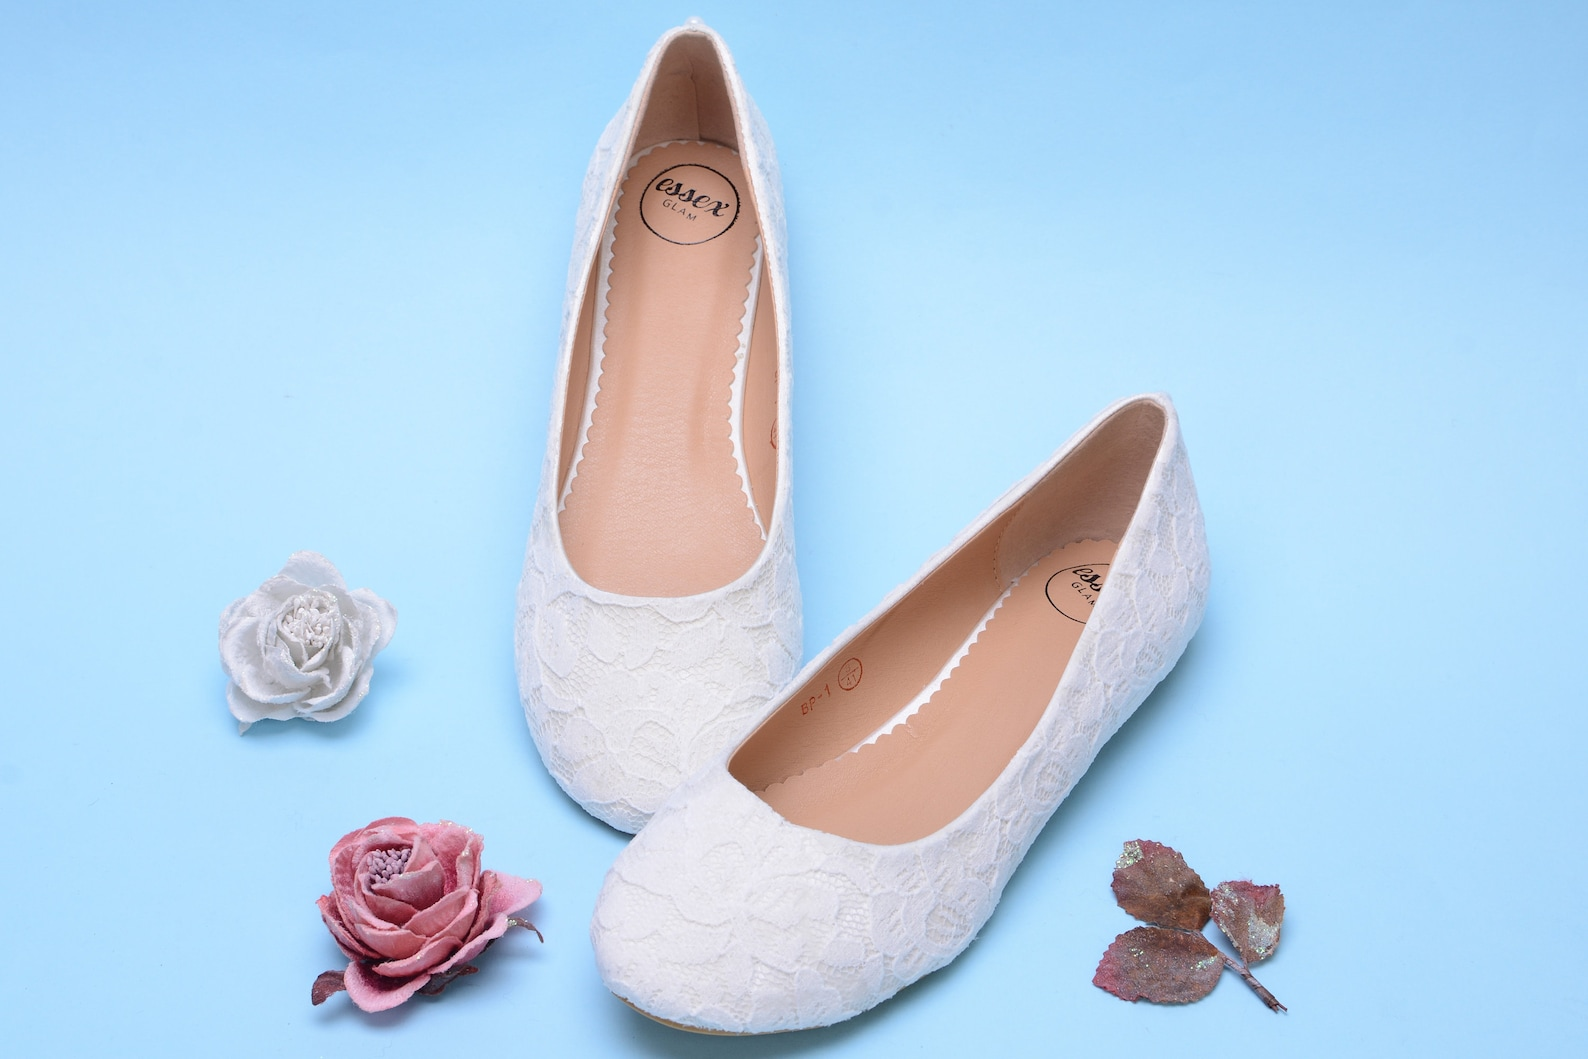 custom wedding shoes, flat wedding shoes, lace wedding flats for bride, satin wedding ballet flats for bride white wedding flats